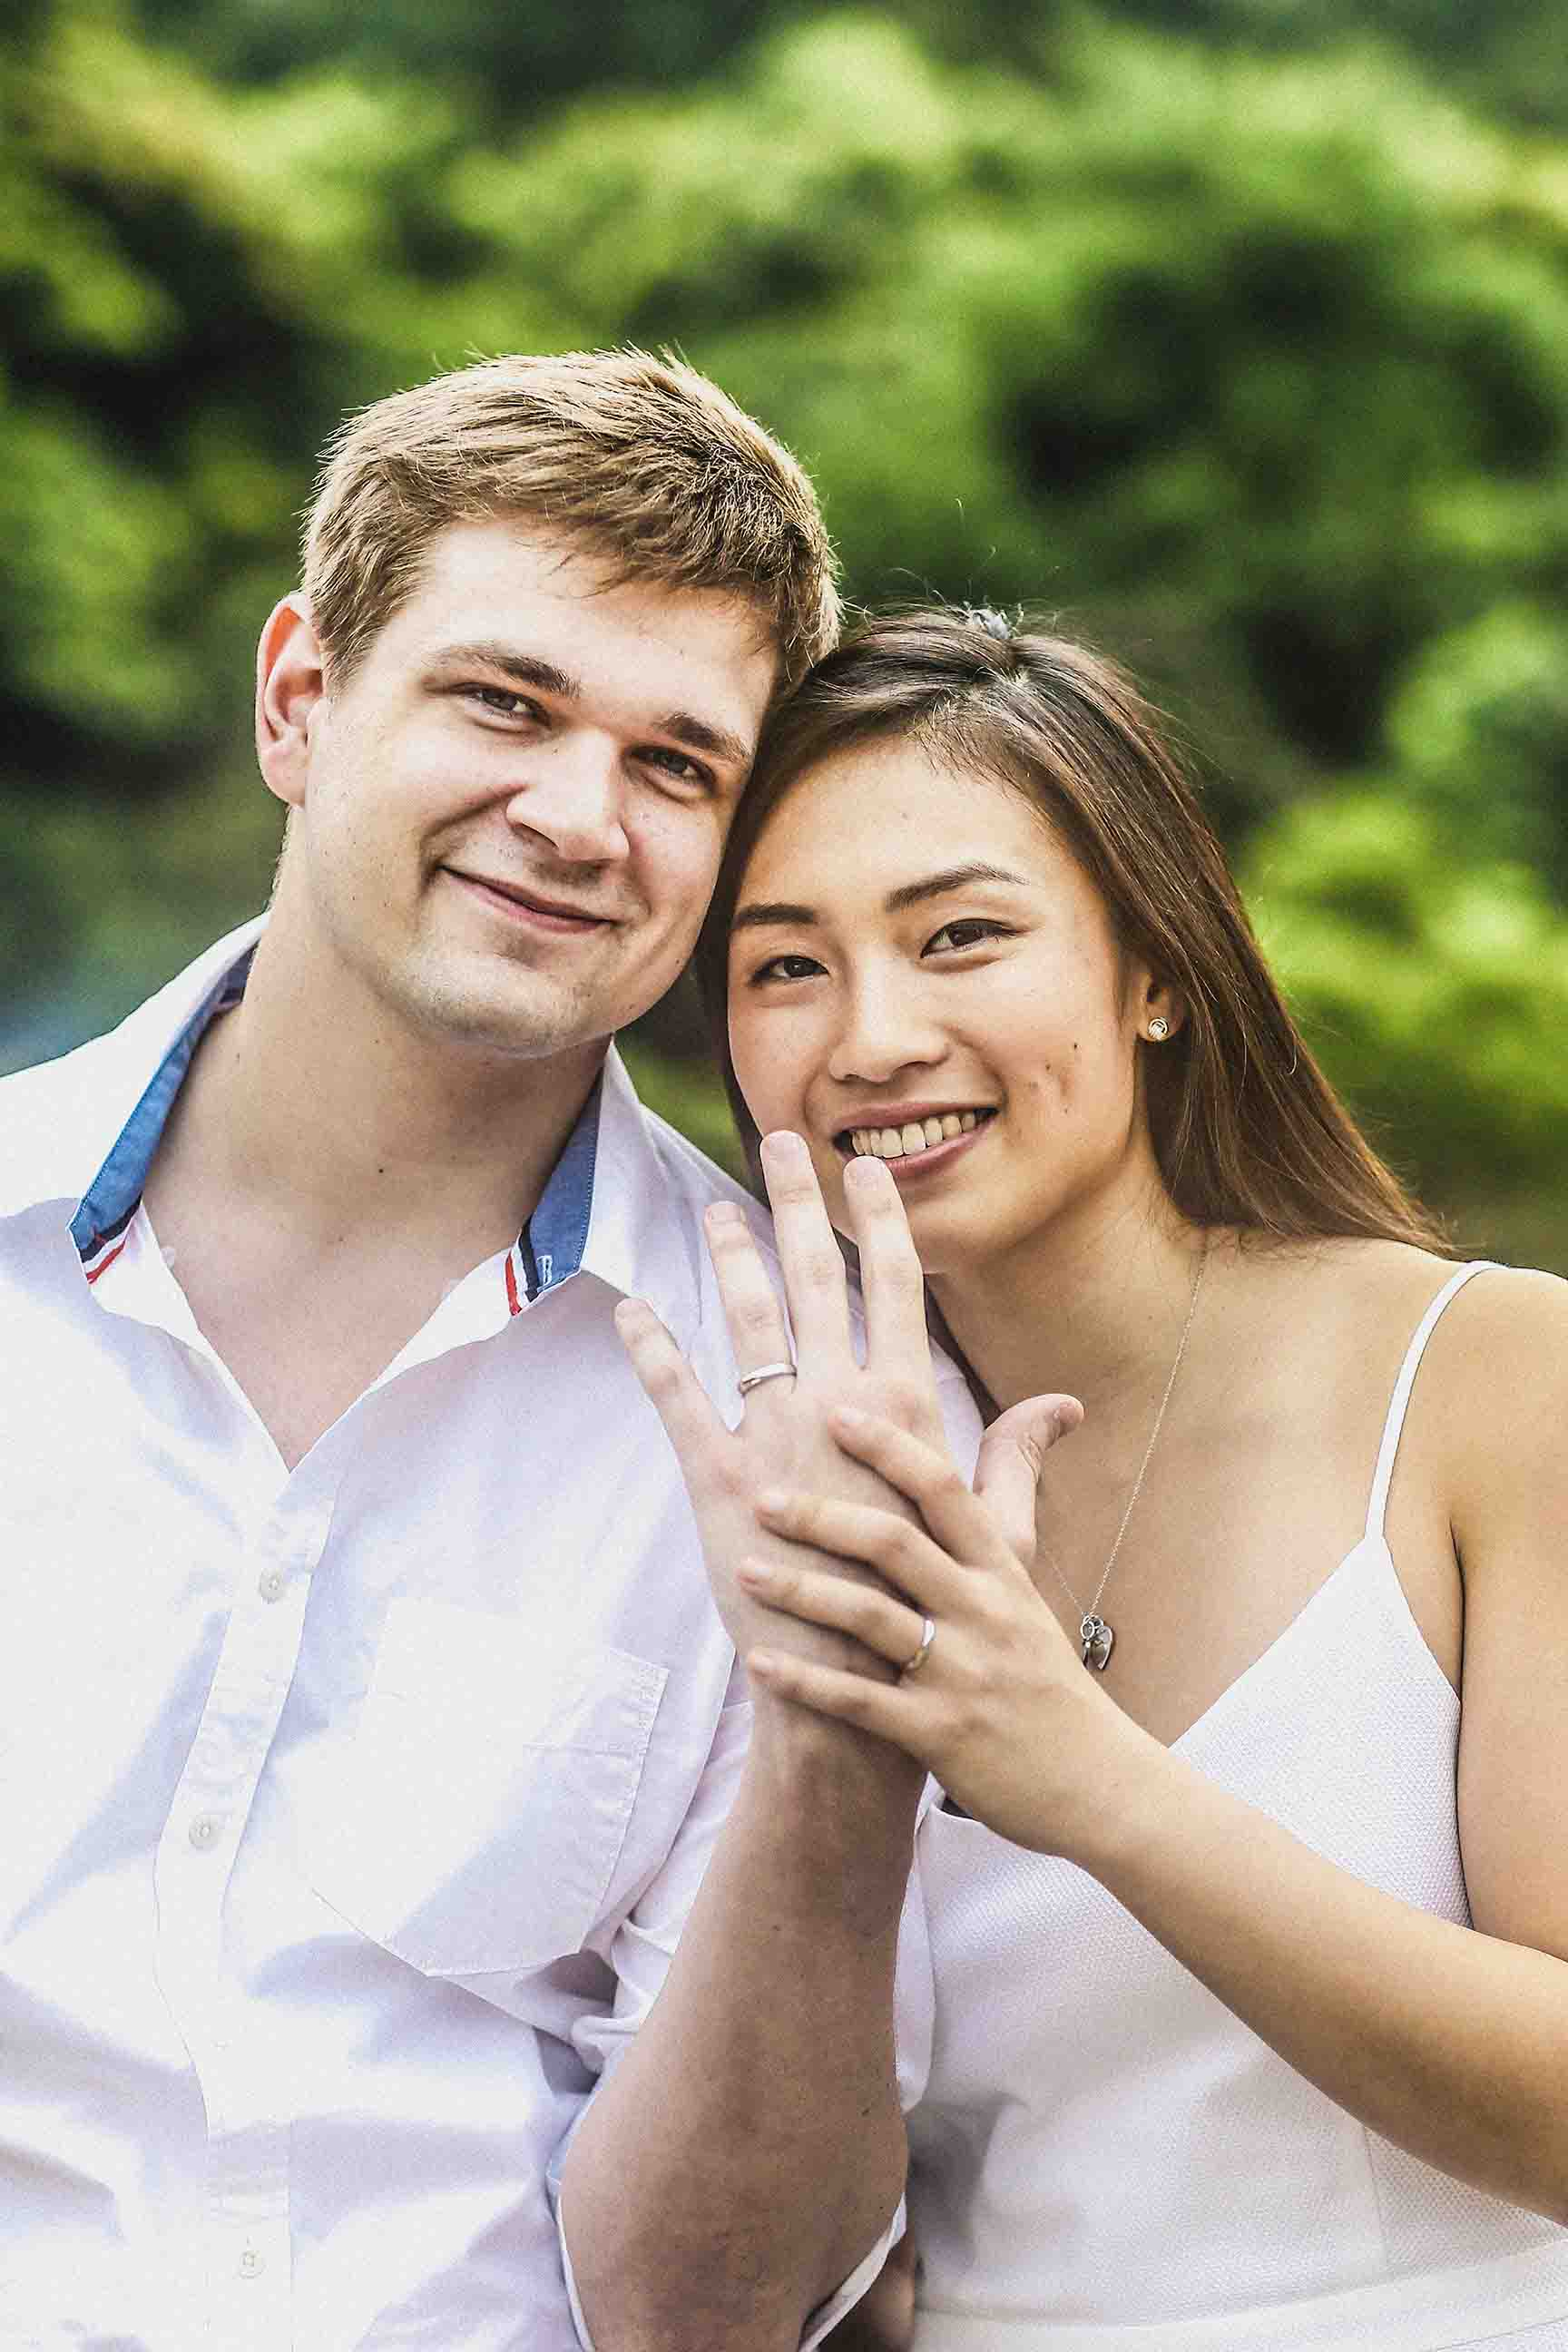 Engagement Portrait of Tyler Holland and Charlotte Chang